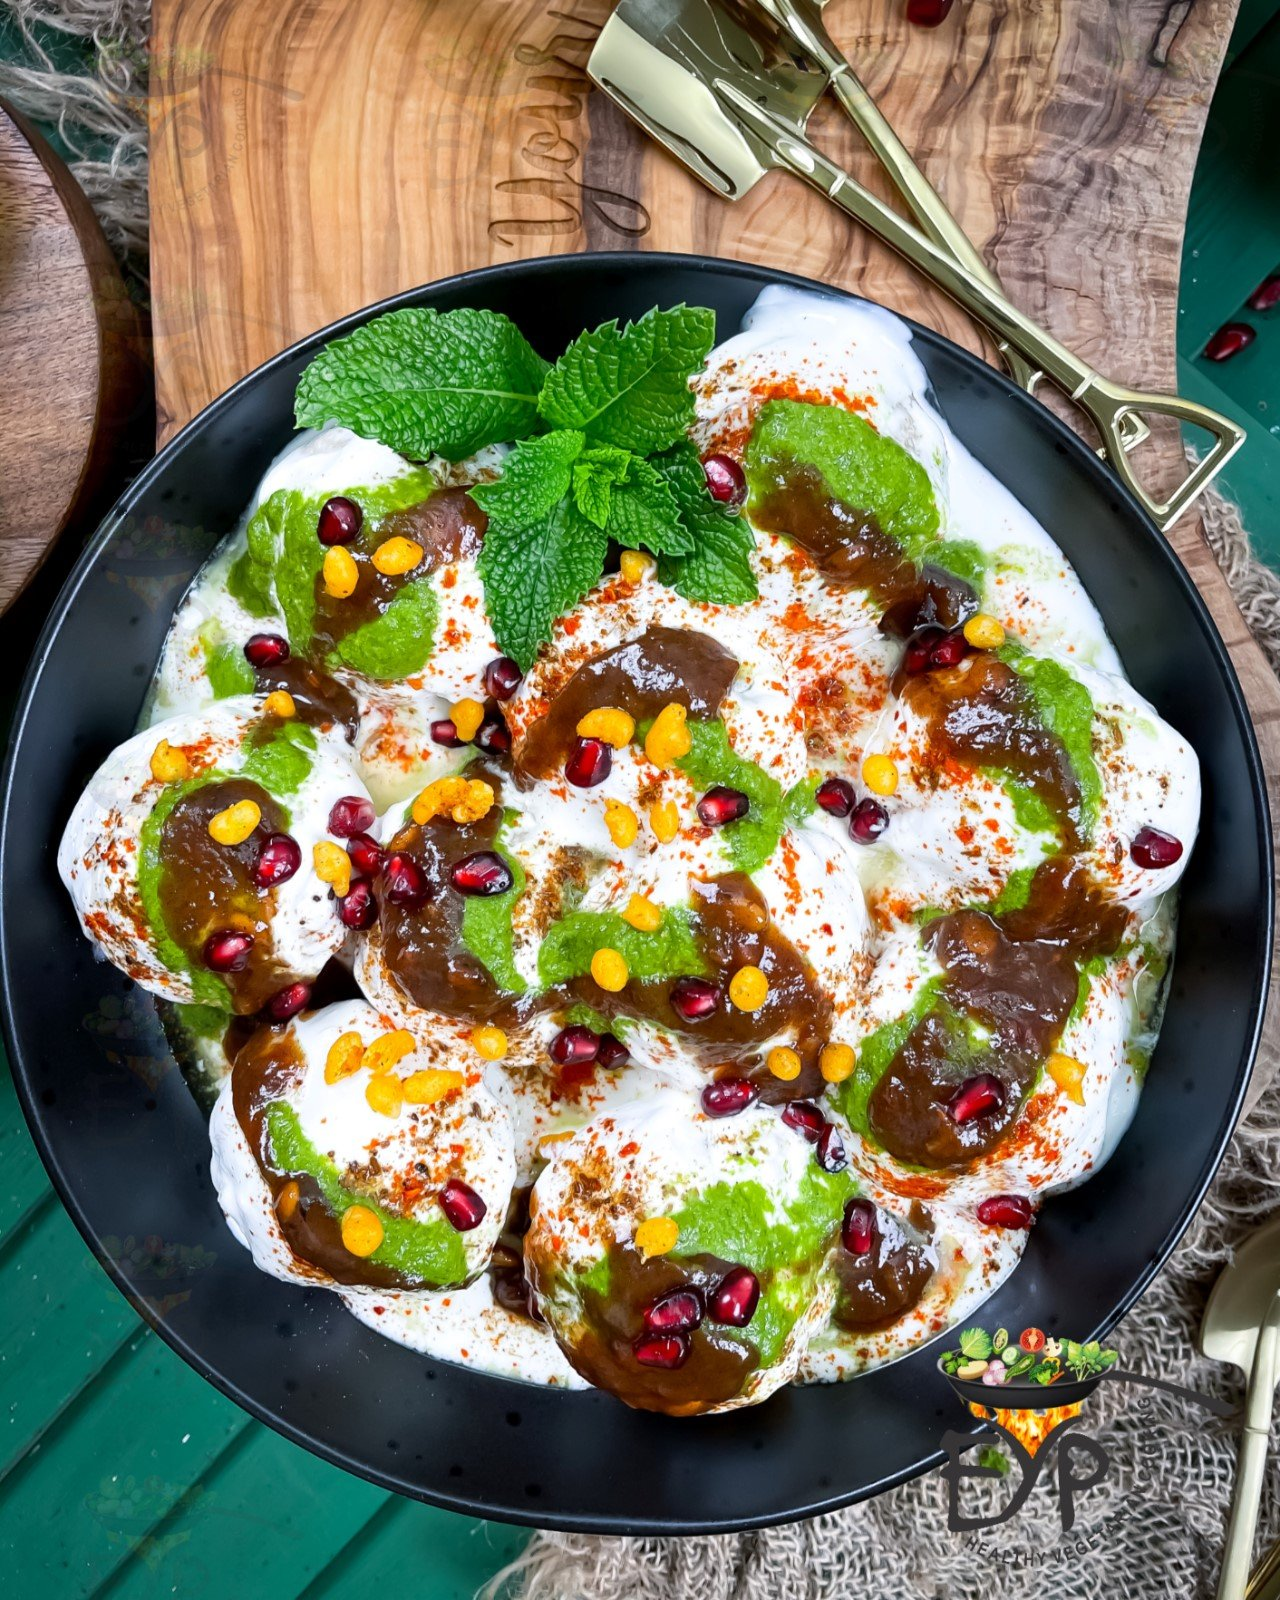 Dahi vada ready to be served